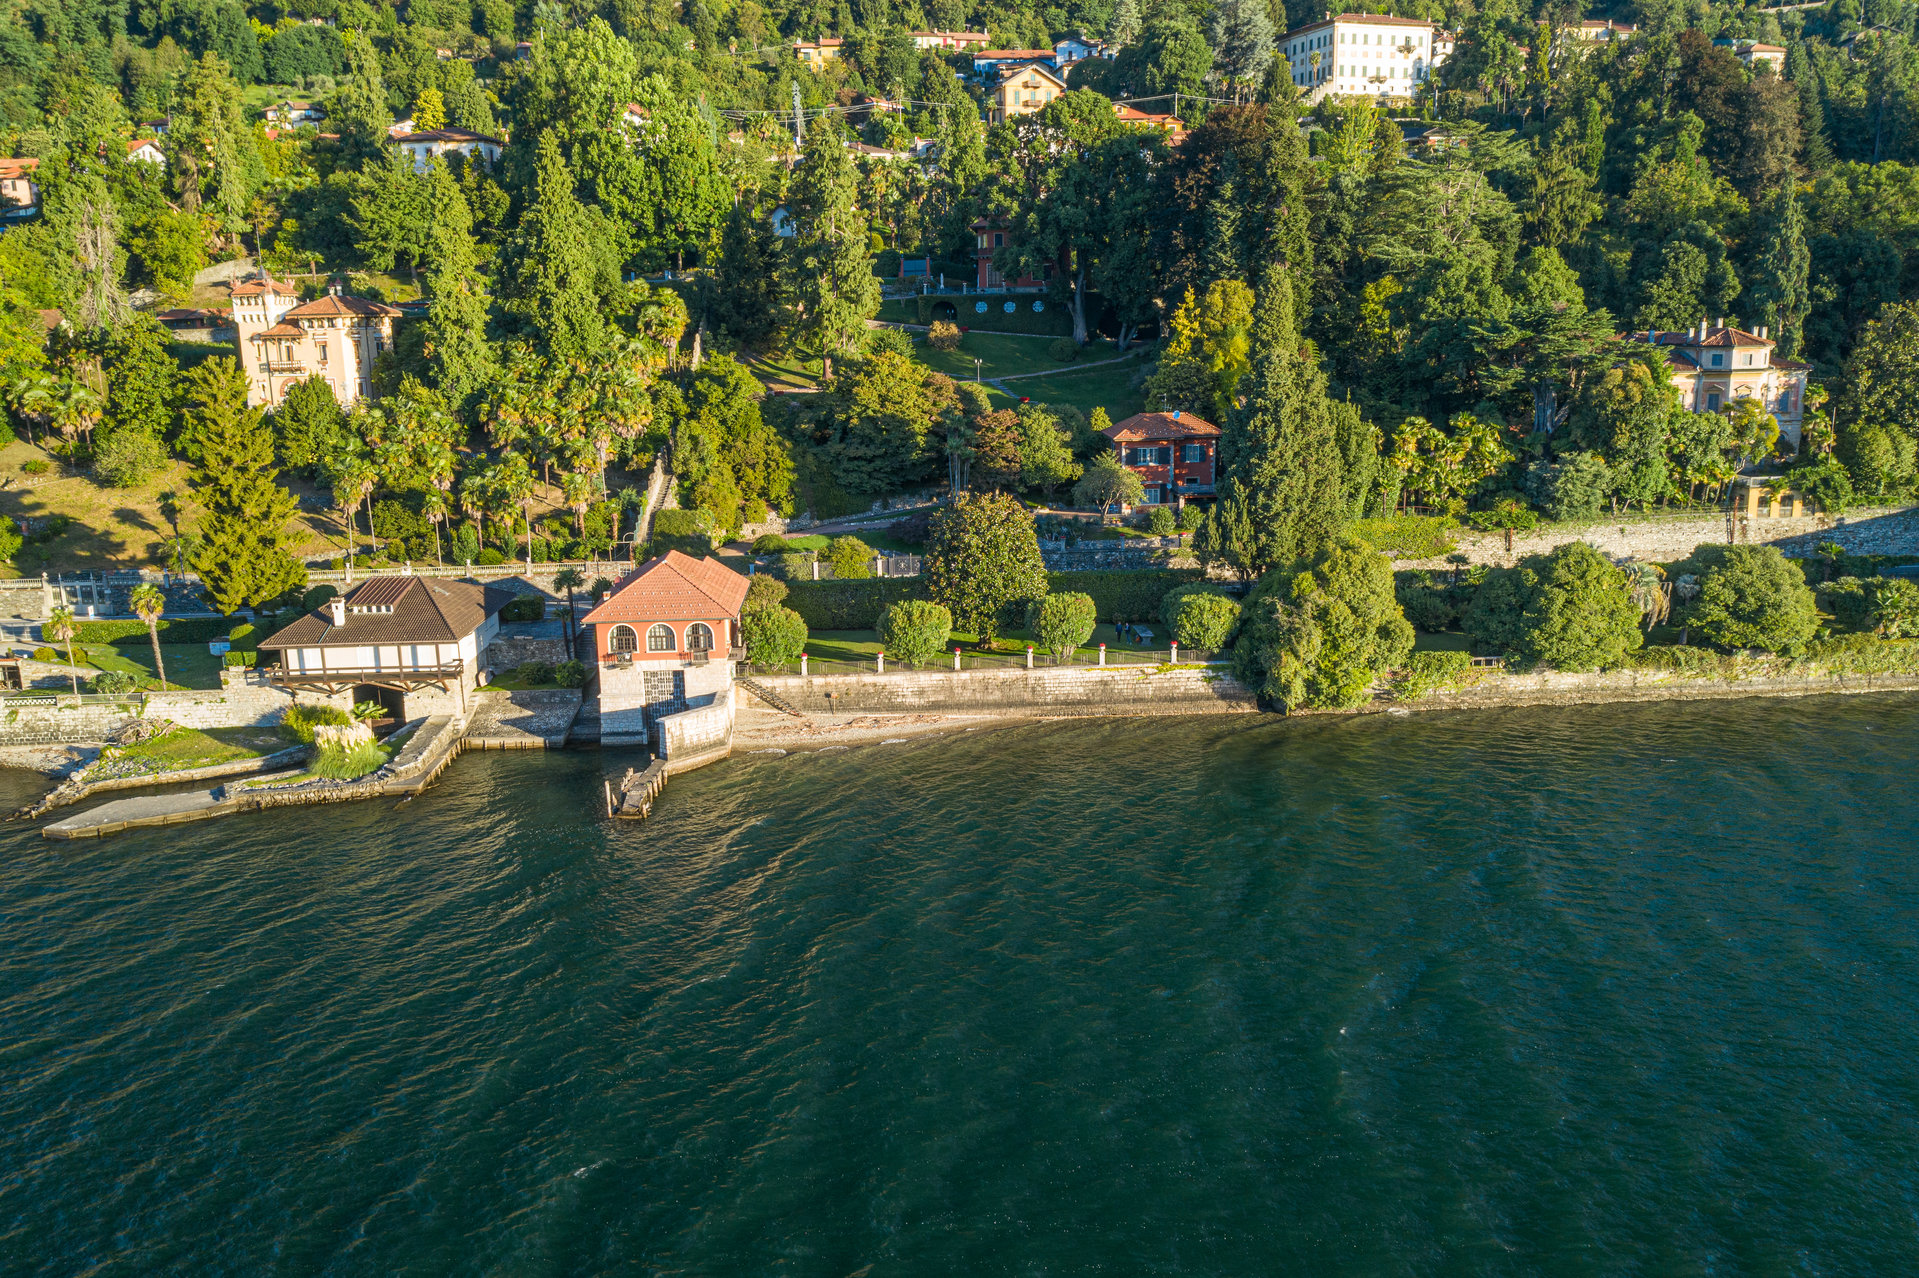 Period villa pieds dans l'eau for sale in Ghiffa - top view